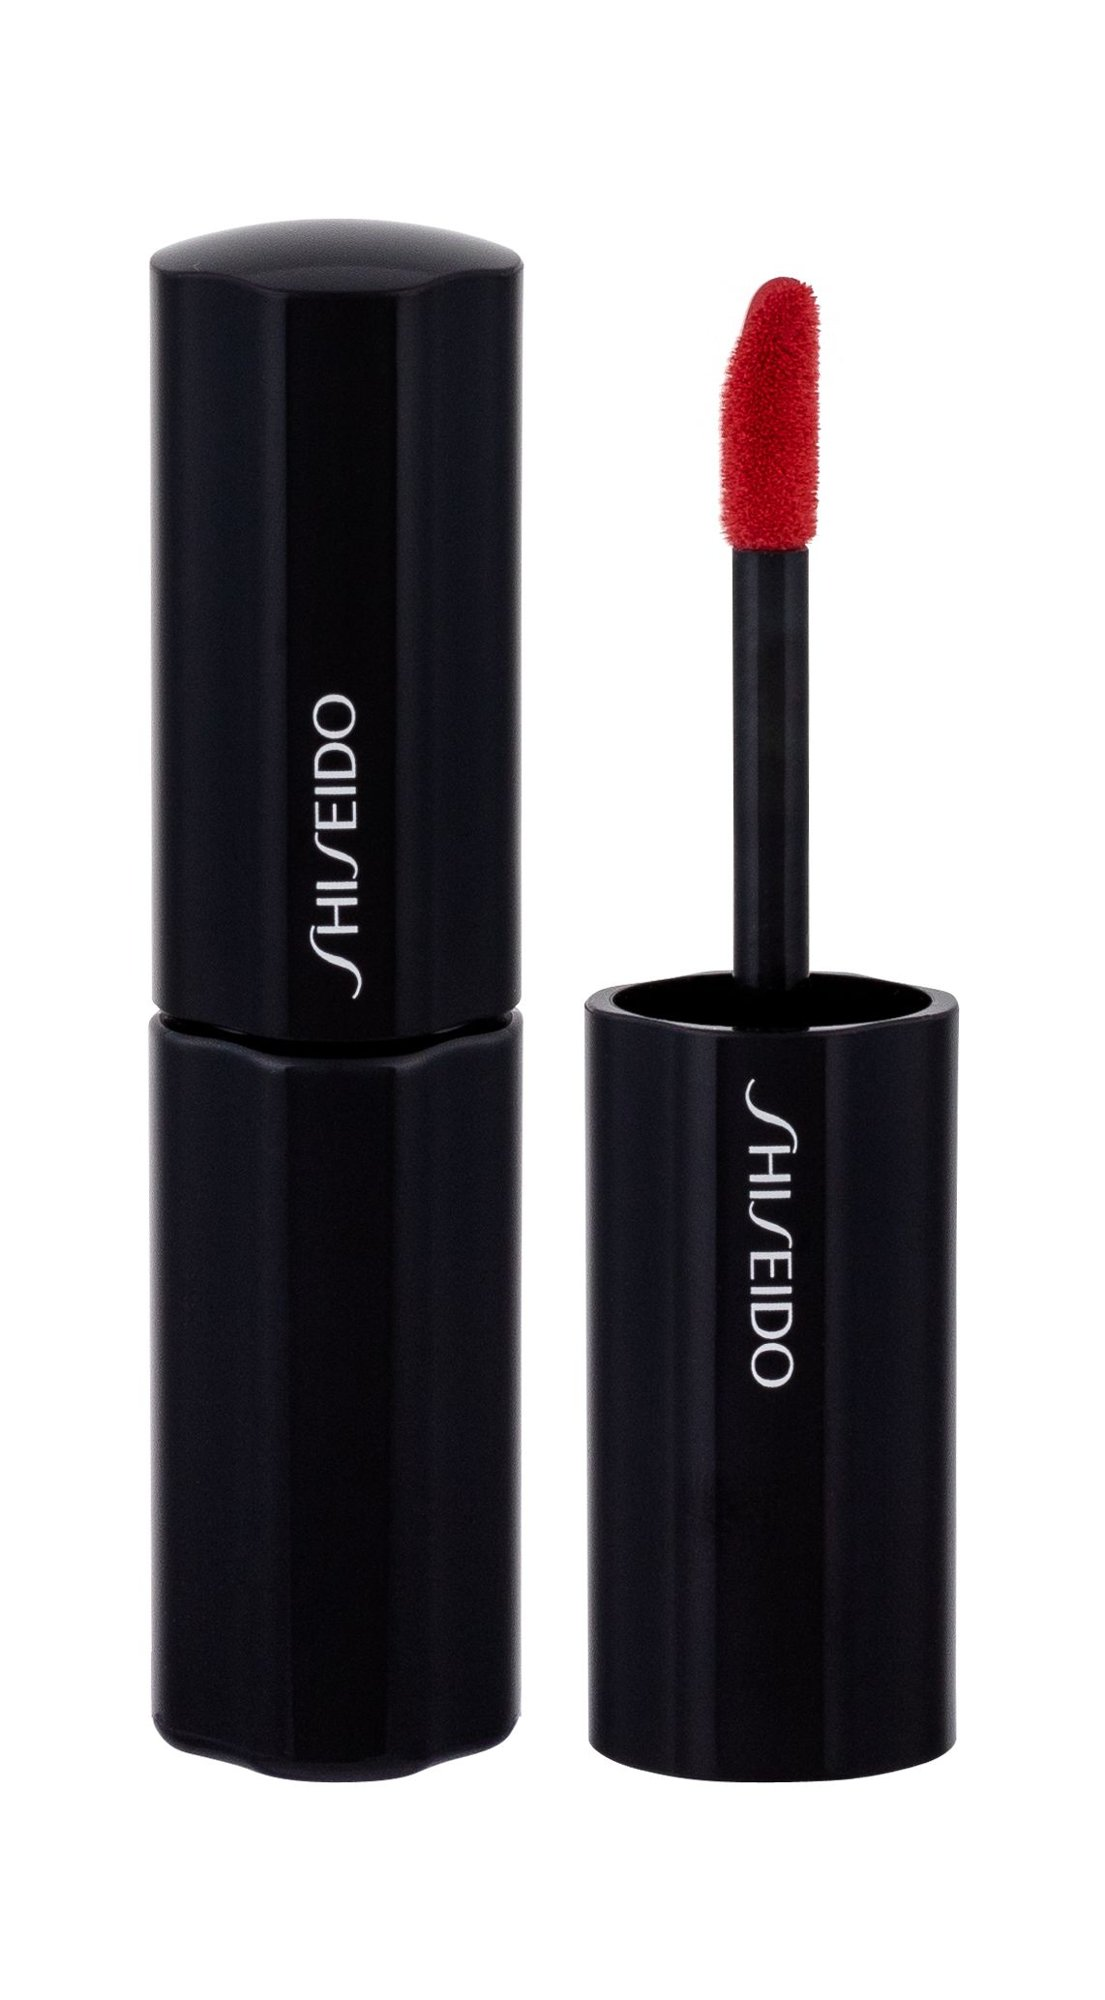 Shiseido Lacquer Rouge Lipstick 6ml RD501